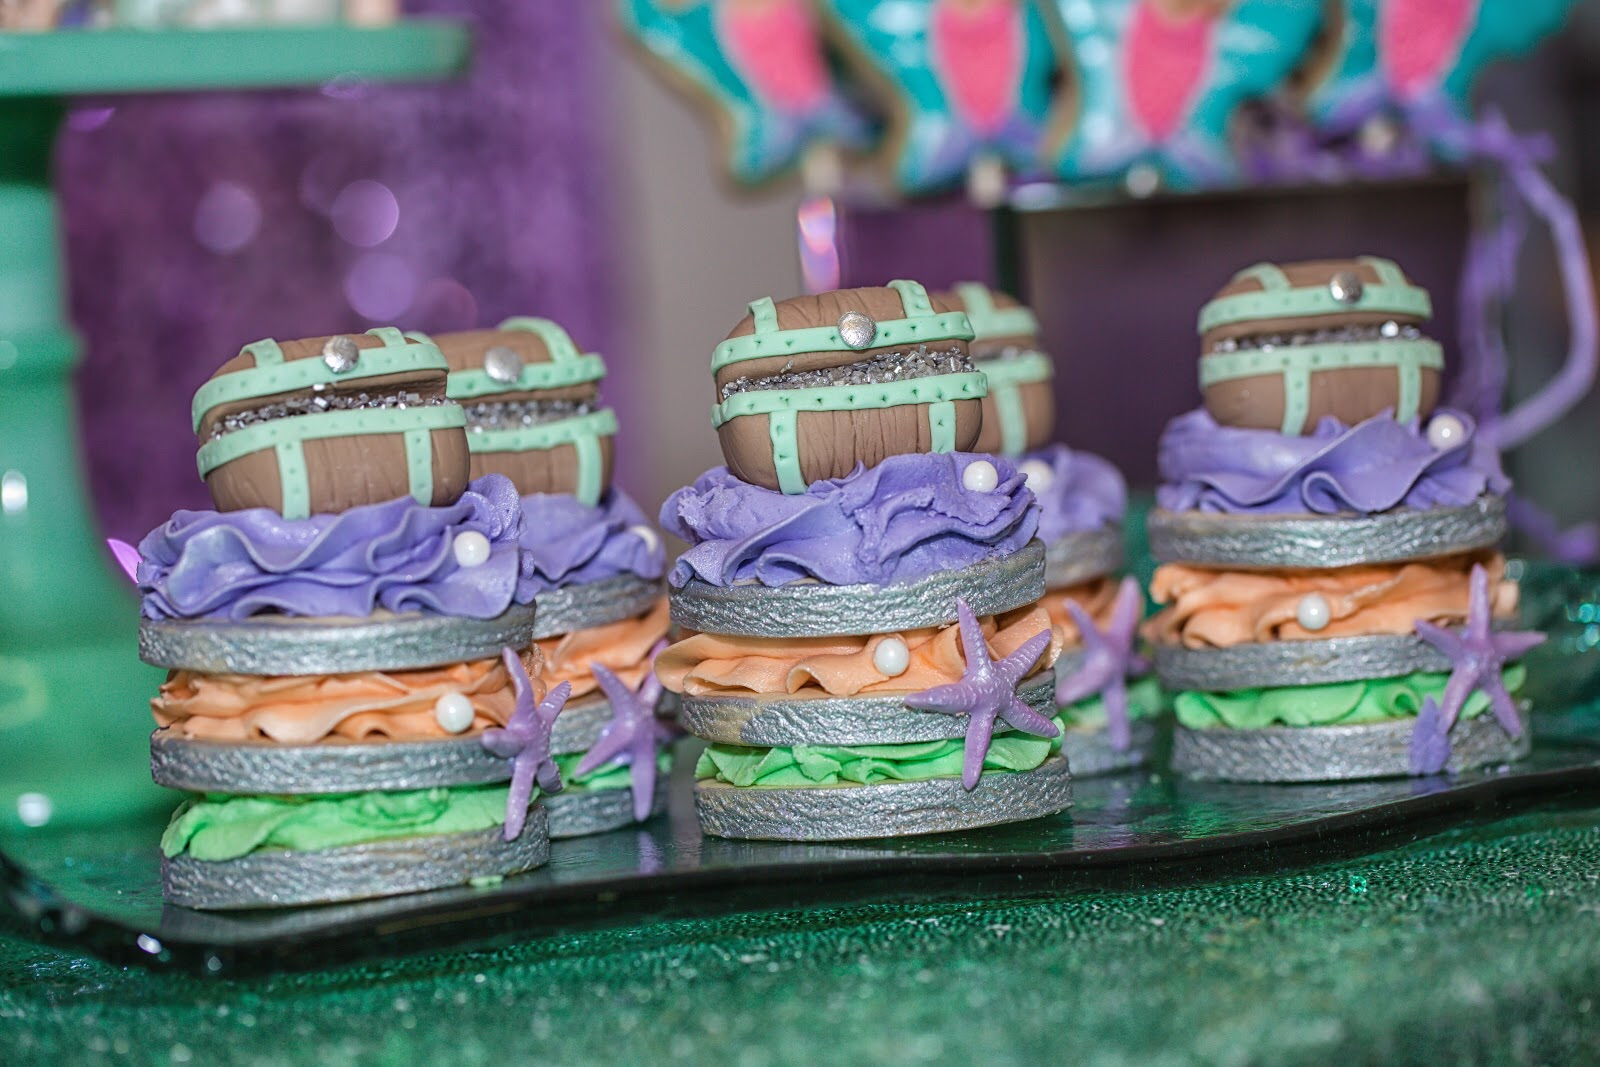 Cookie Towers with a cute treasure chest on top